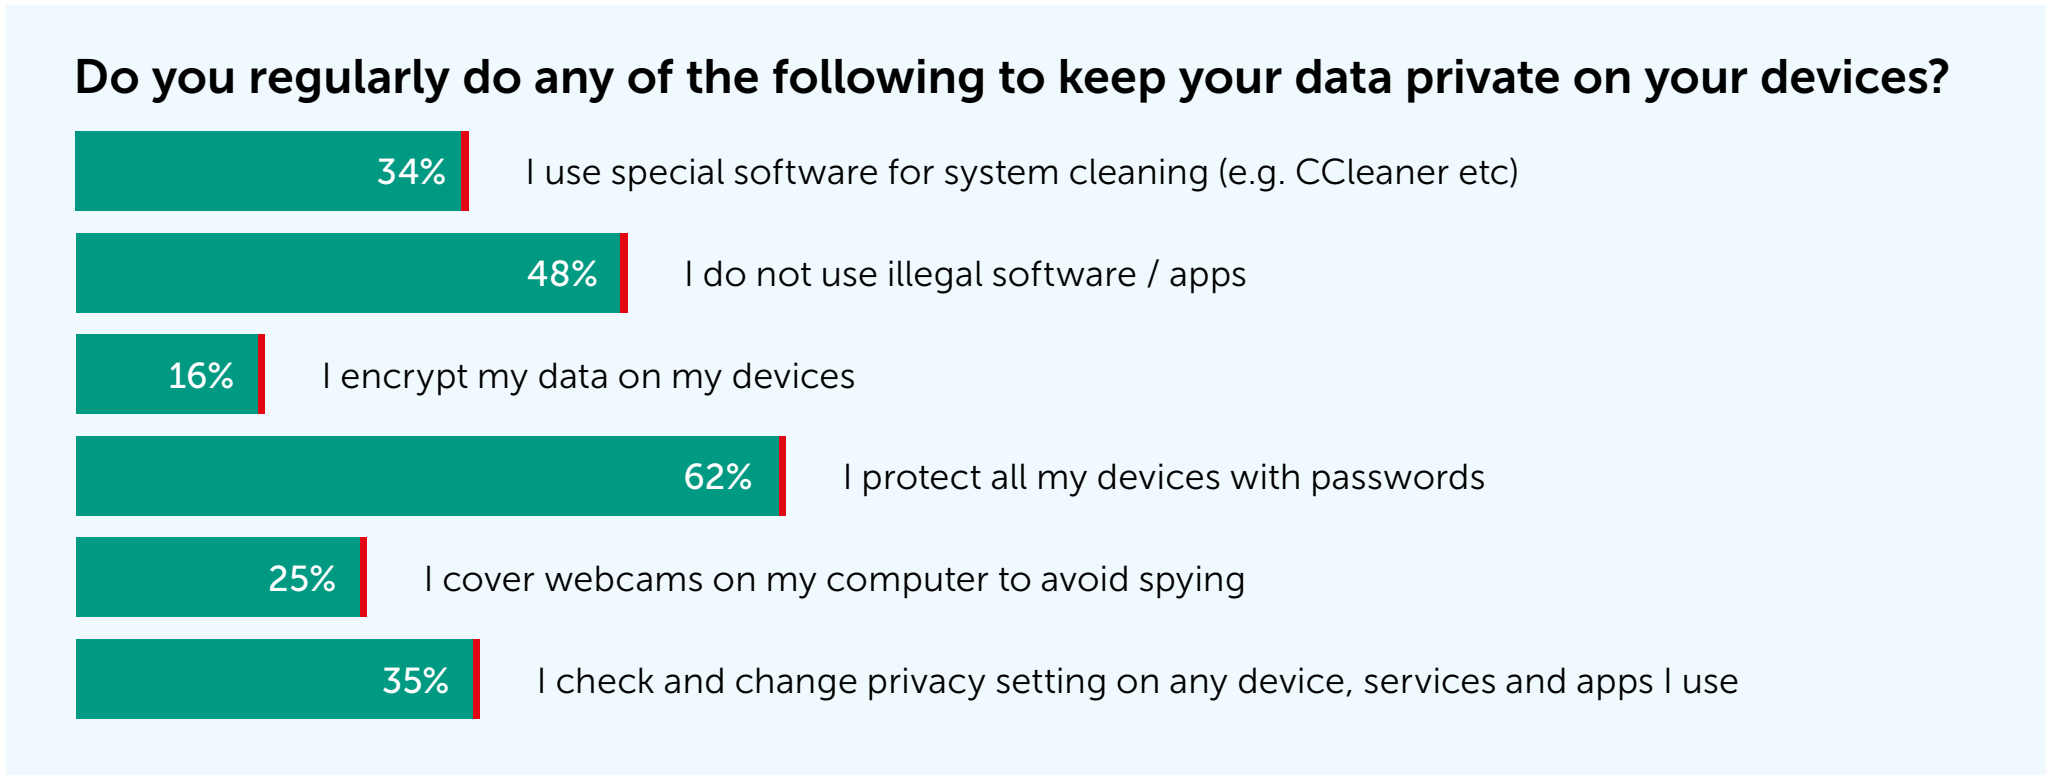 How people keep their data private on their devices